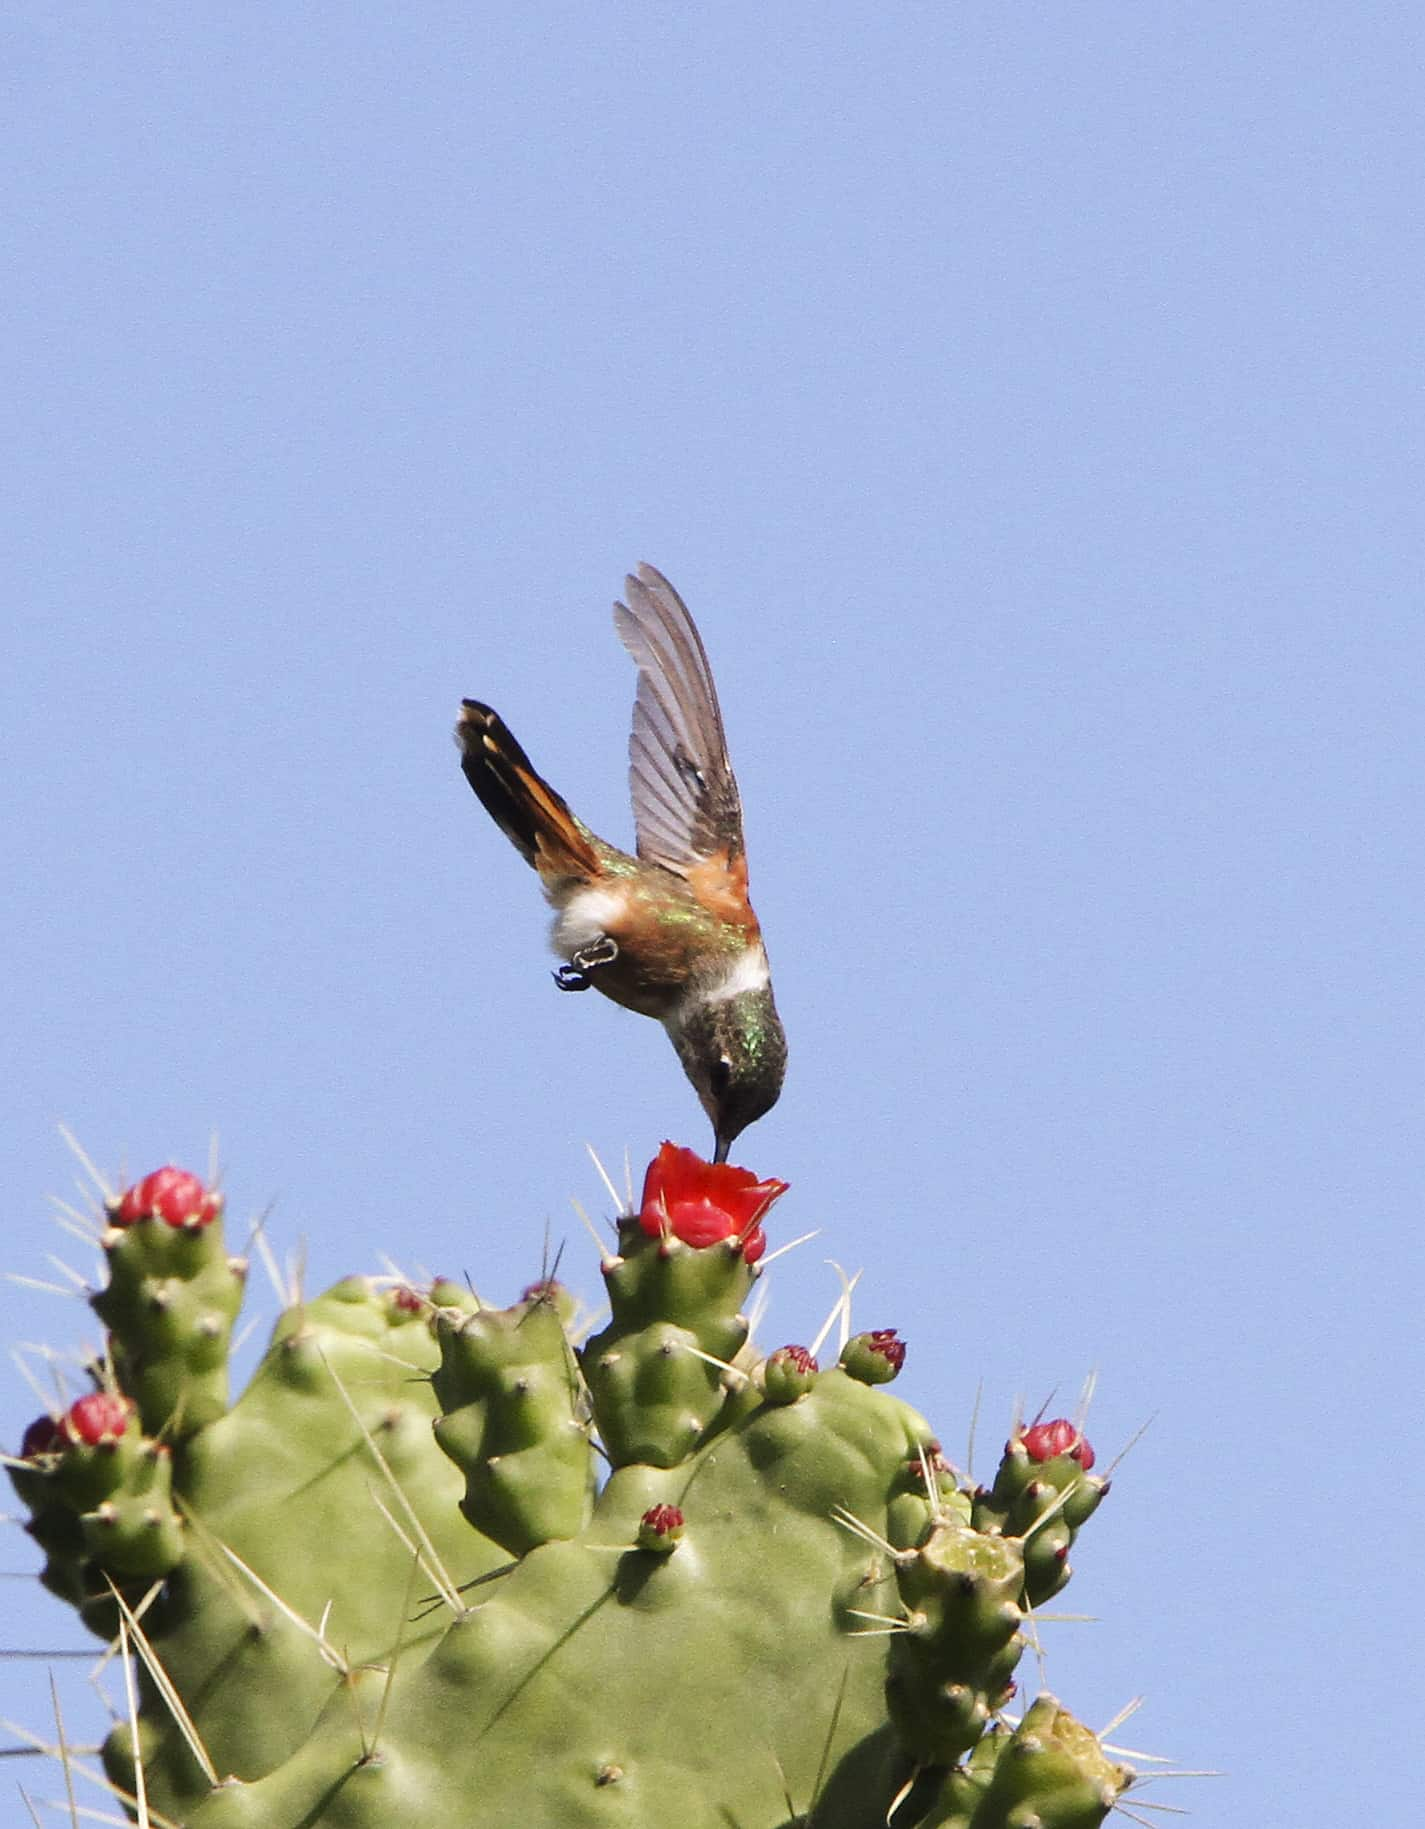 Bahama woodstar hummingbird (endemic to TCI and the Bahamas), feeding on nectar from the flower of a cactus. Copyright: Dr Mike Pienkowski